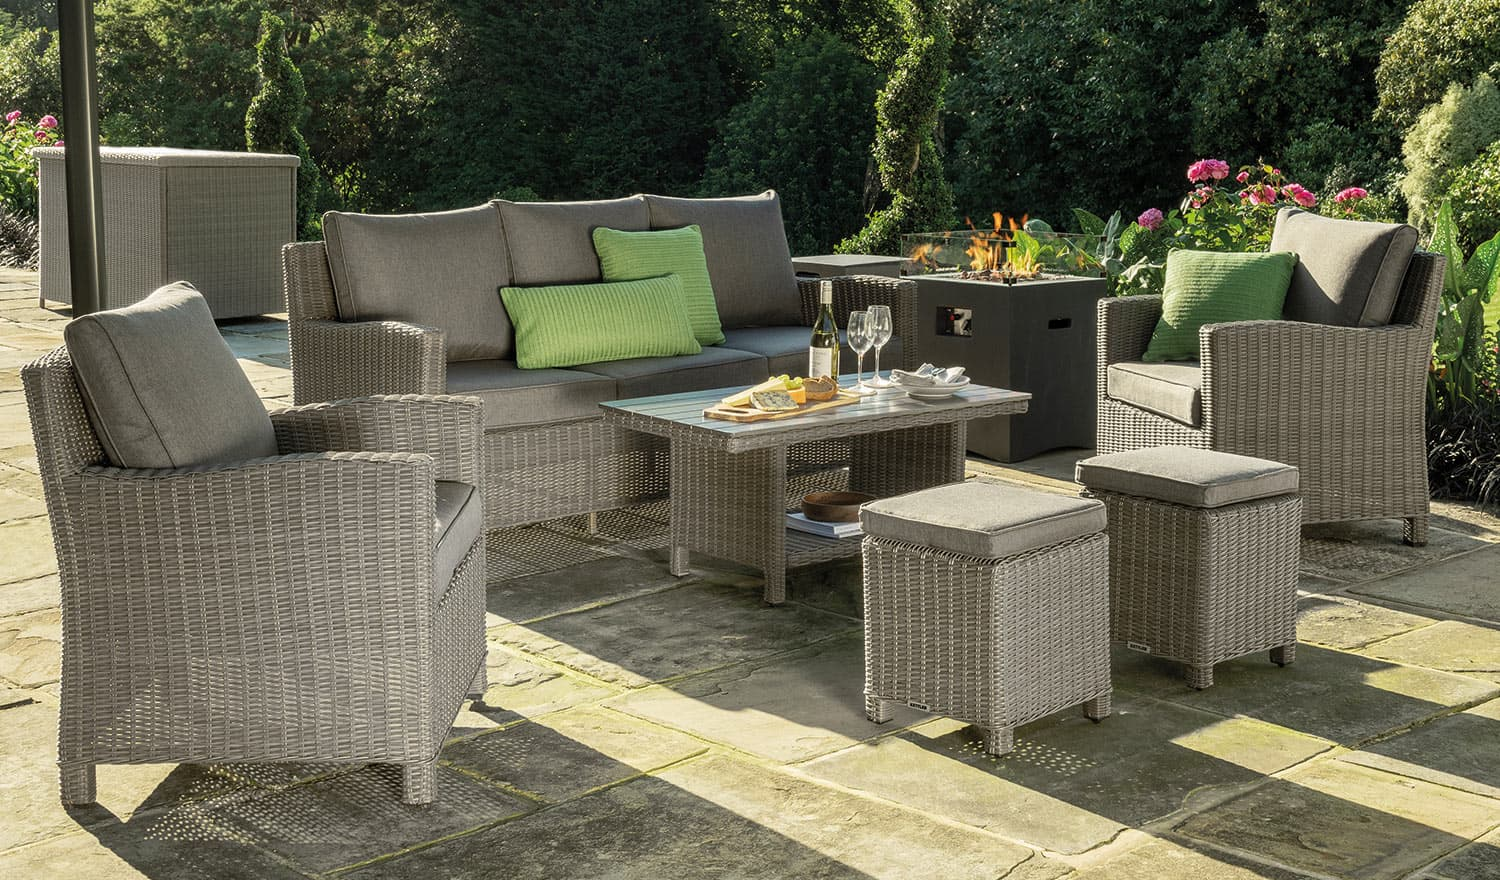 Palma Sofa Set  Casual Dining Garden Furniture - Kettler Official